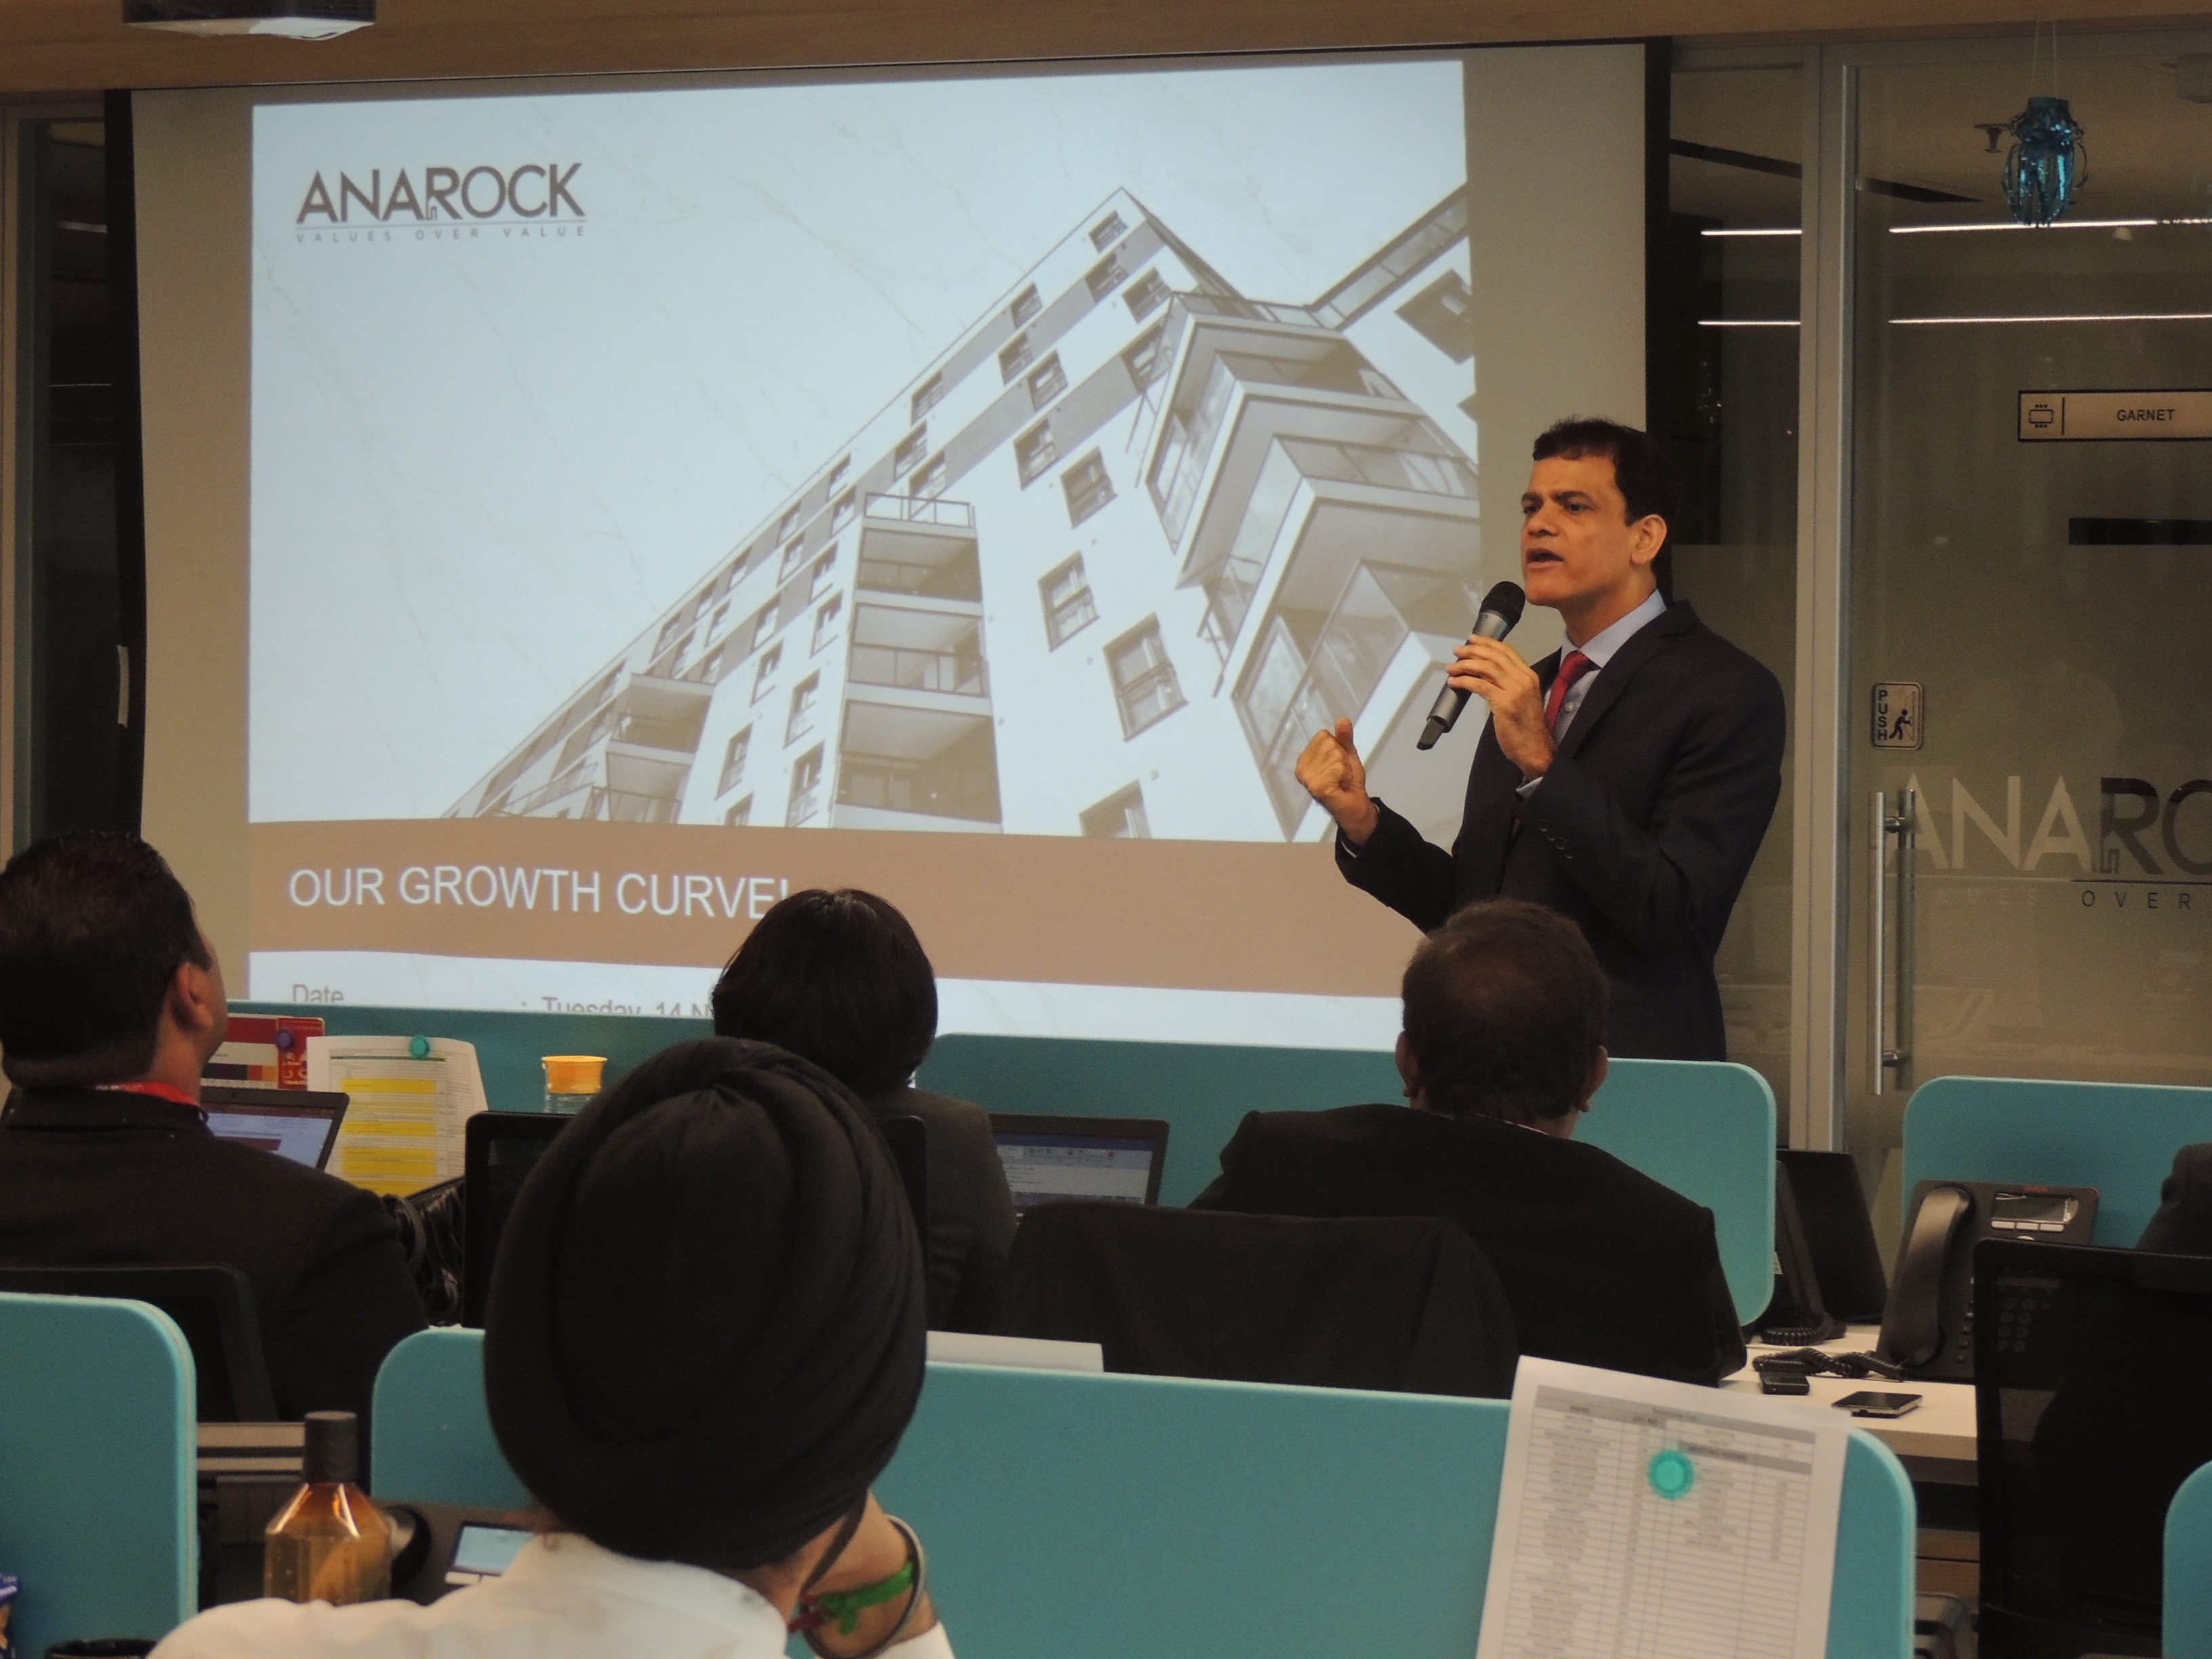 Anuj Puri, Chairman of Anarock, Puri sees his new venture as returning to his entrepreneurial roots